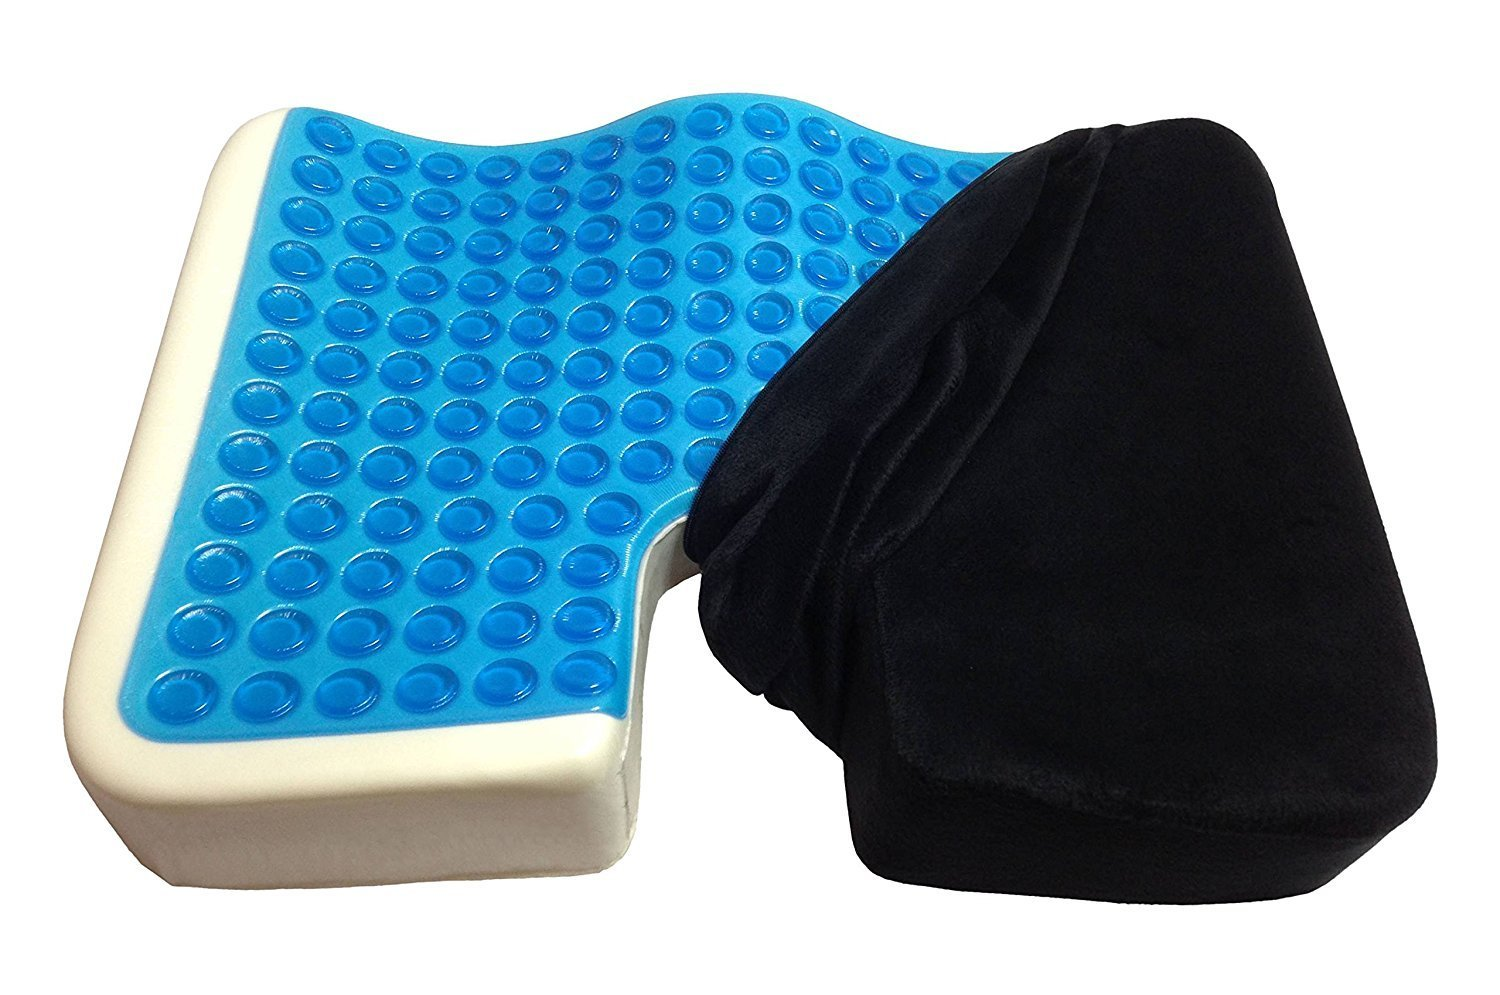 back pain office chair cushion cover rental indianapolis gel seat cushions for home furniture design